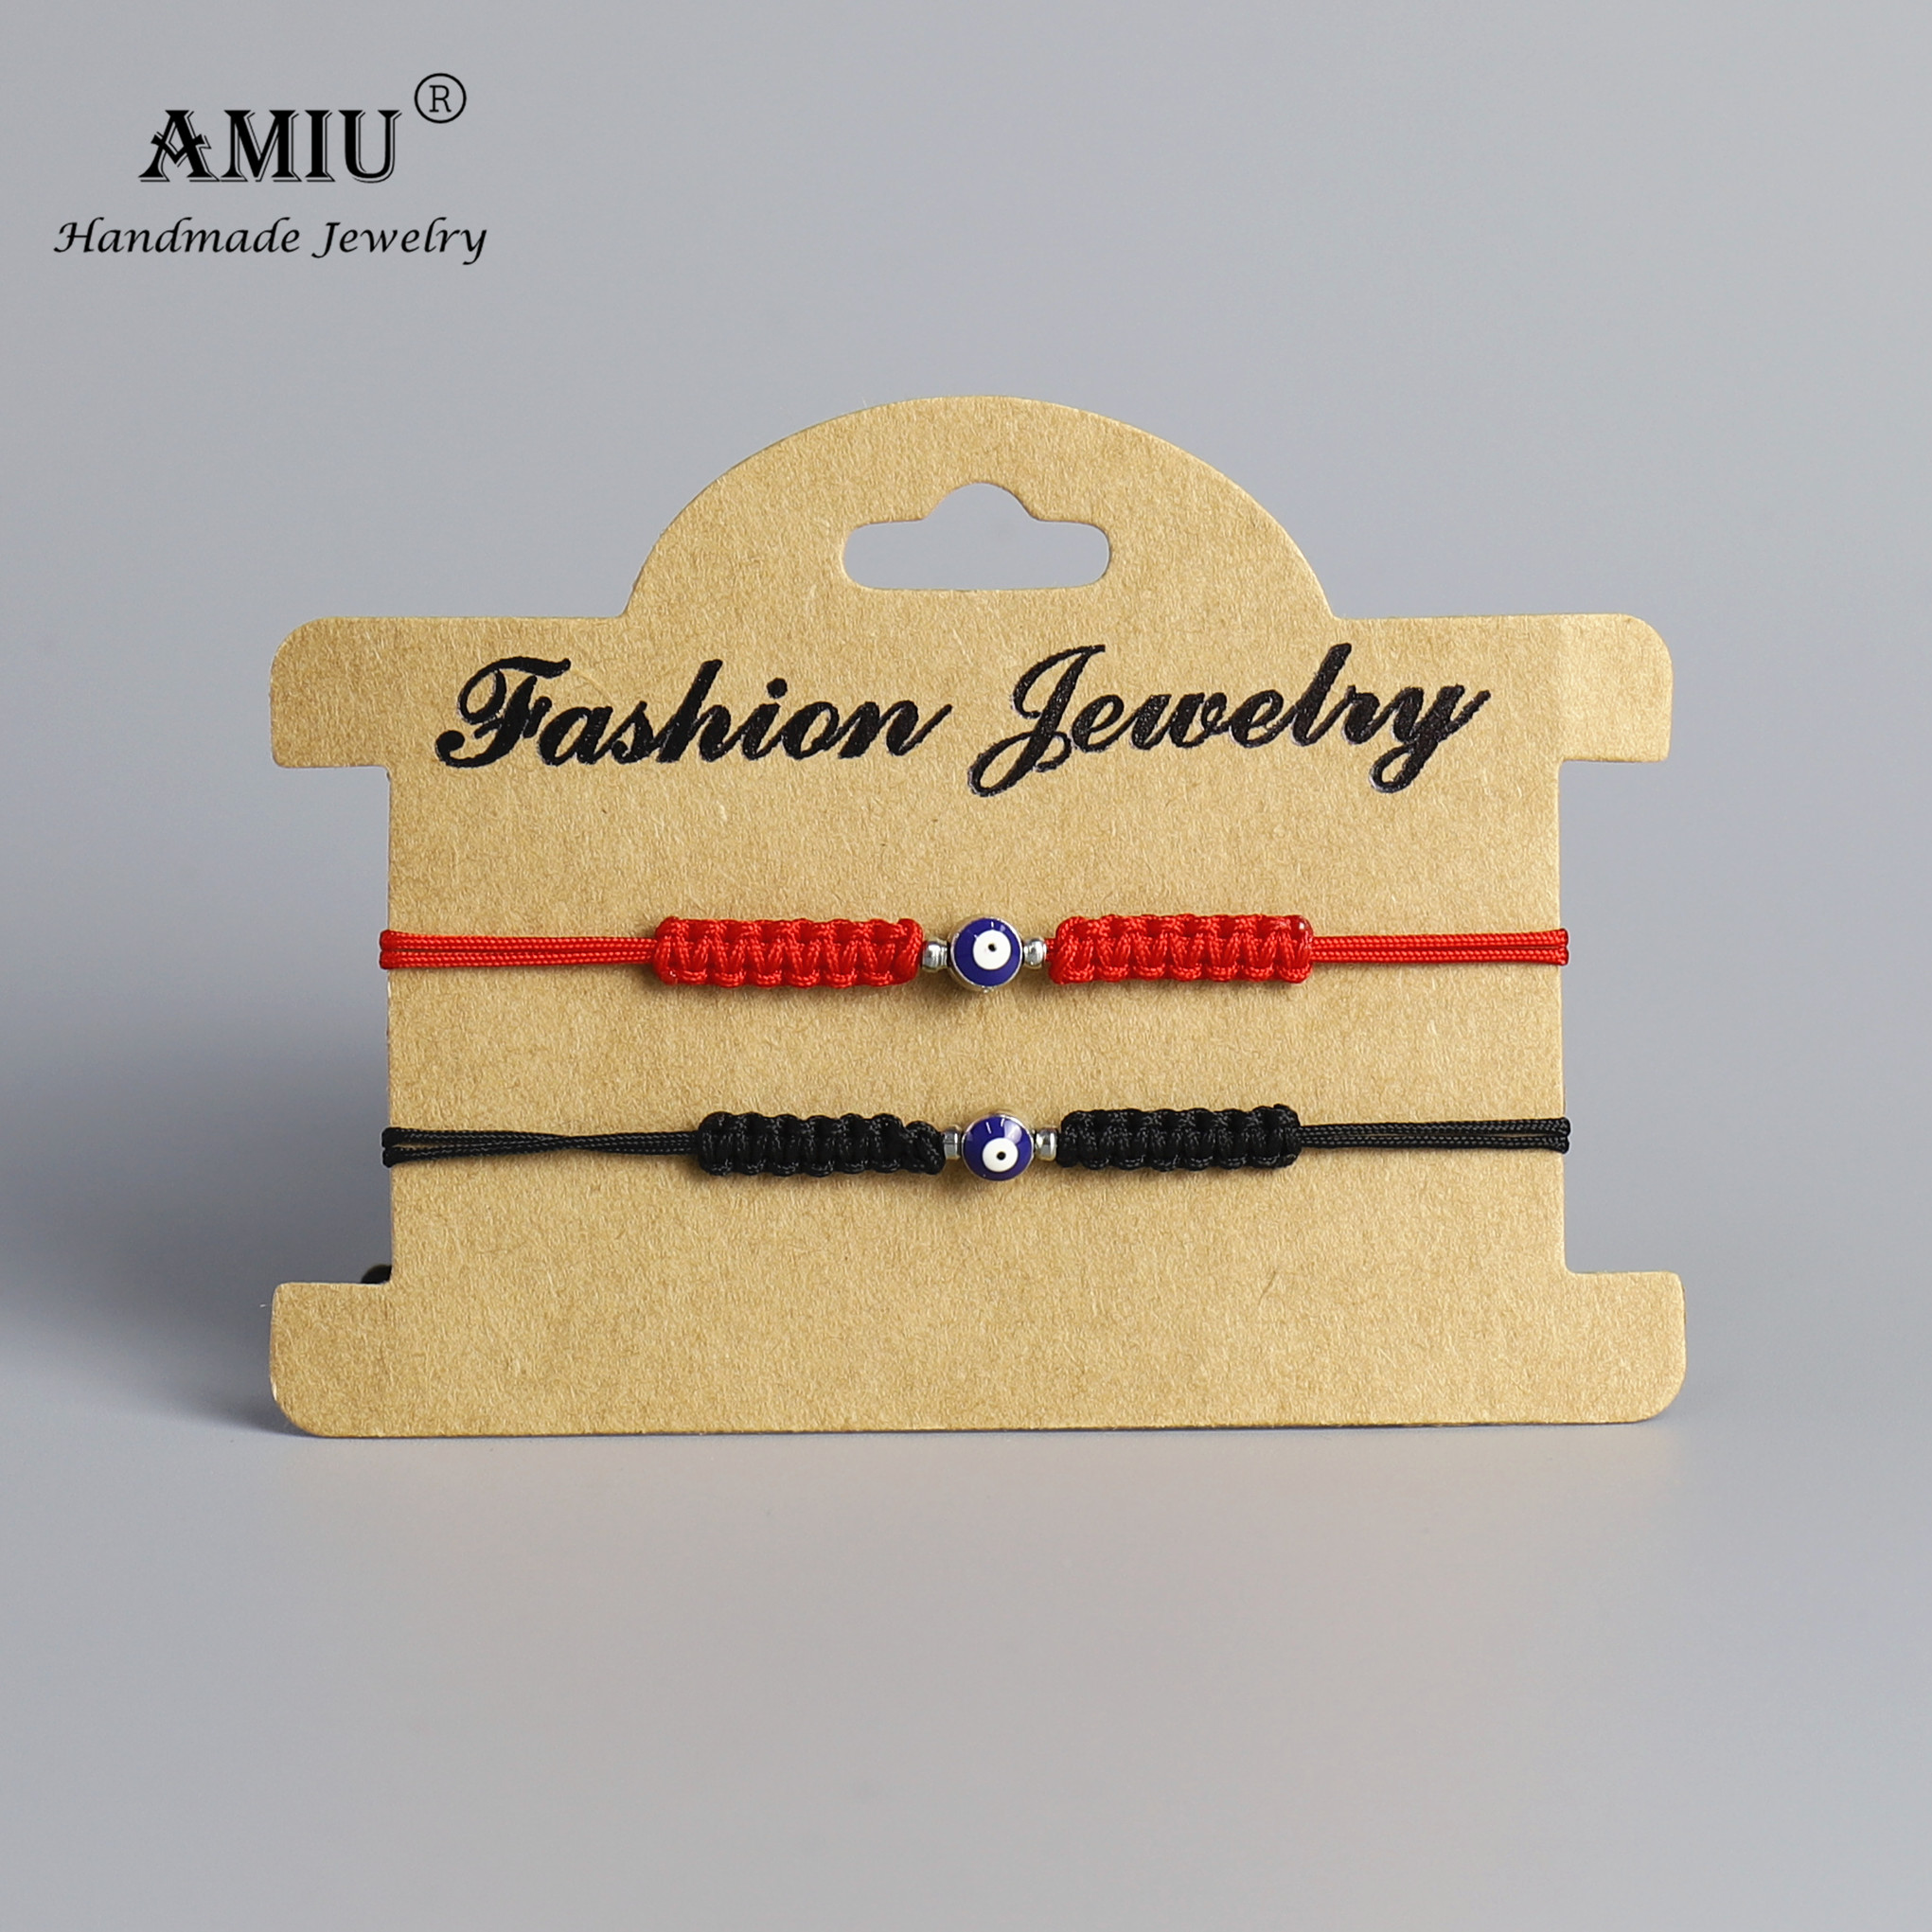 AMIU Handmade Turkish Lucky Blue Evil Eye Bracelets For Couple Friend Handmade Knot Bracelet Braided Red Rope Jewelry image